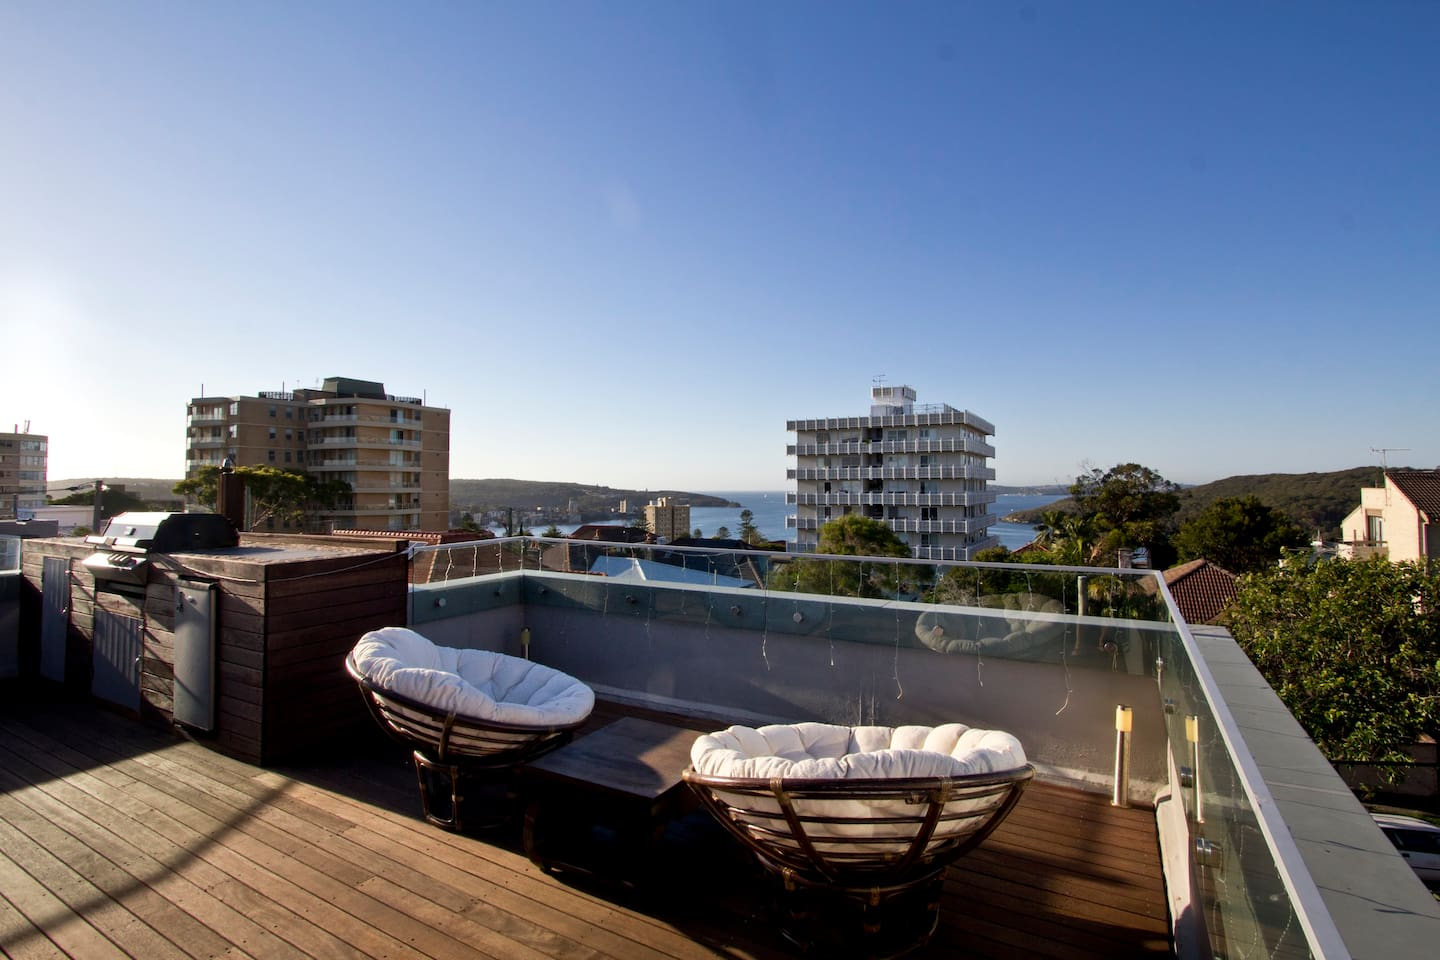 The private rooftop deck - yours to access alone (NOT SHARED!) and enjoy amazing views